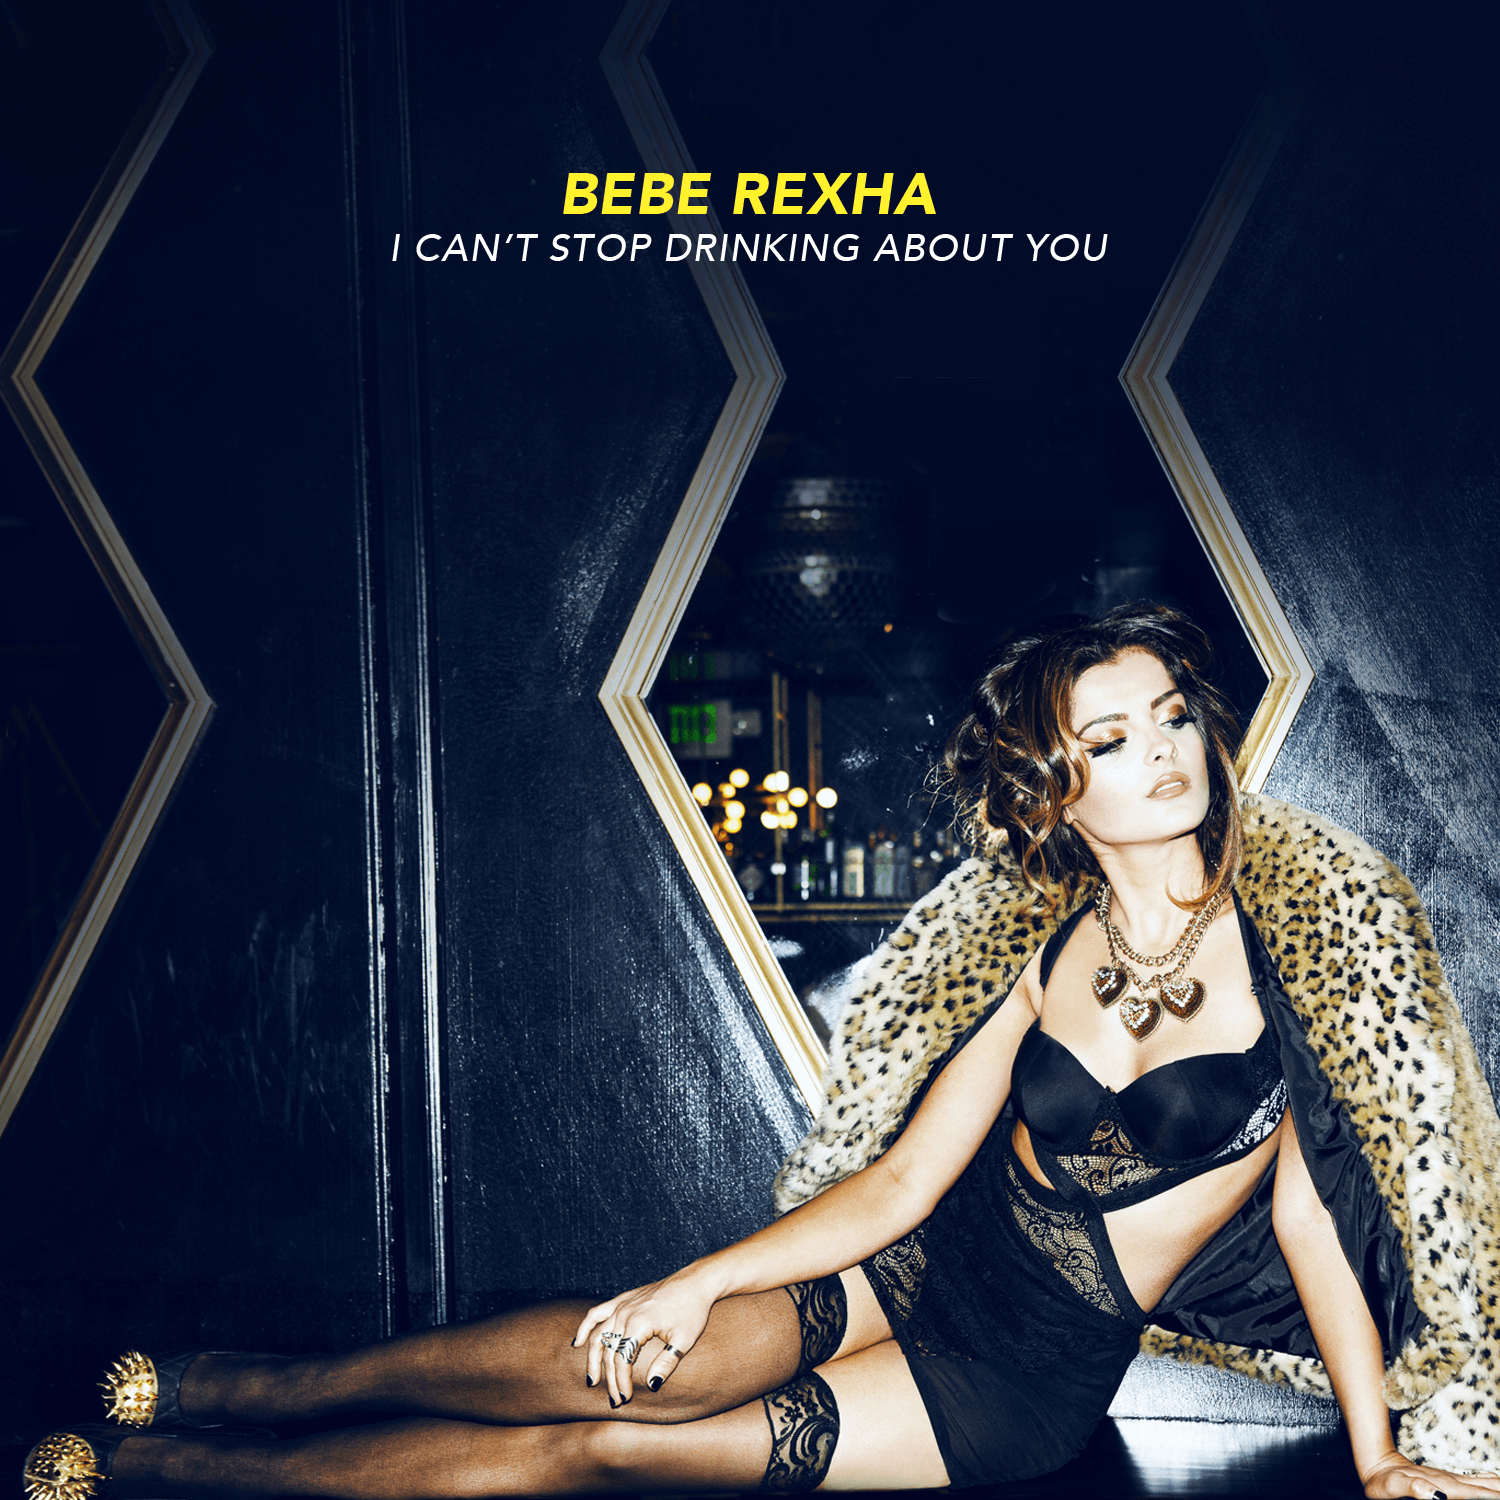 Bebe-Rexha-I-Cant-Stop-Drinking-About-You-2014-1500x1500